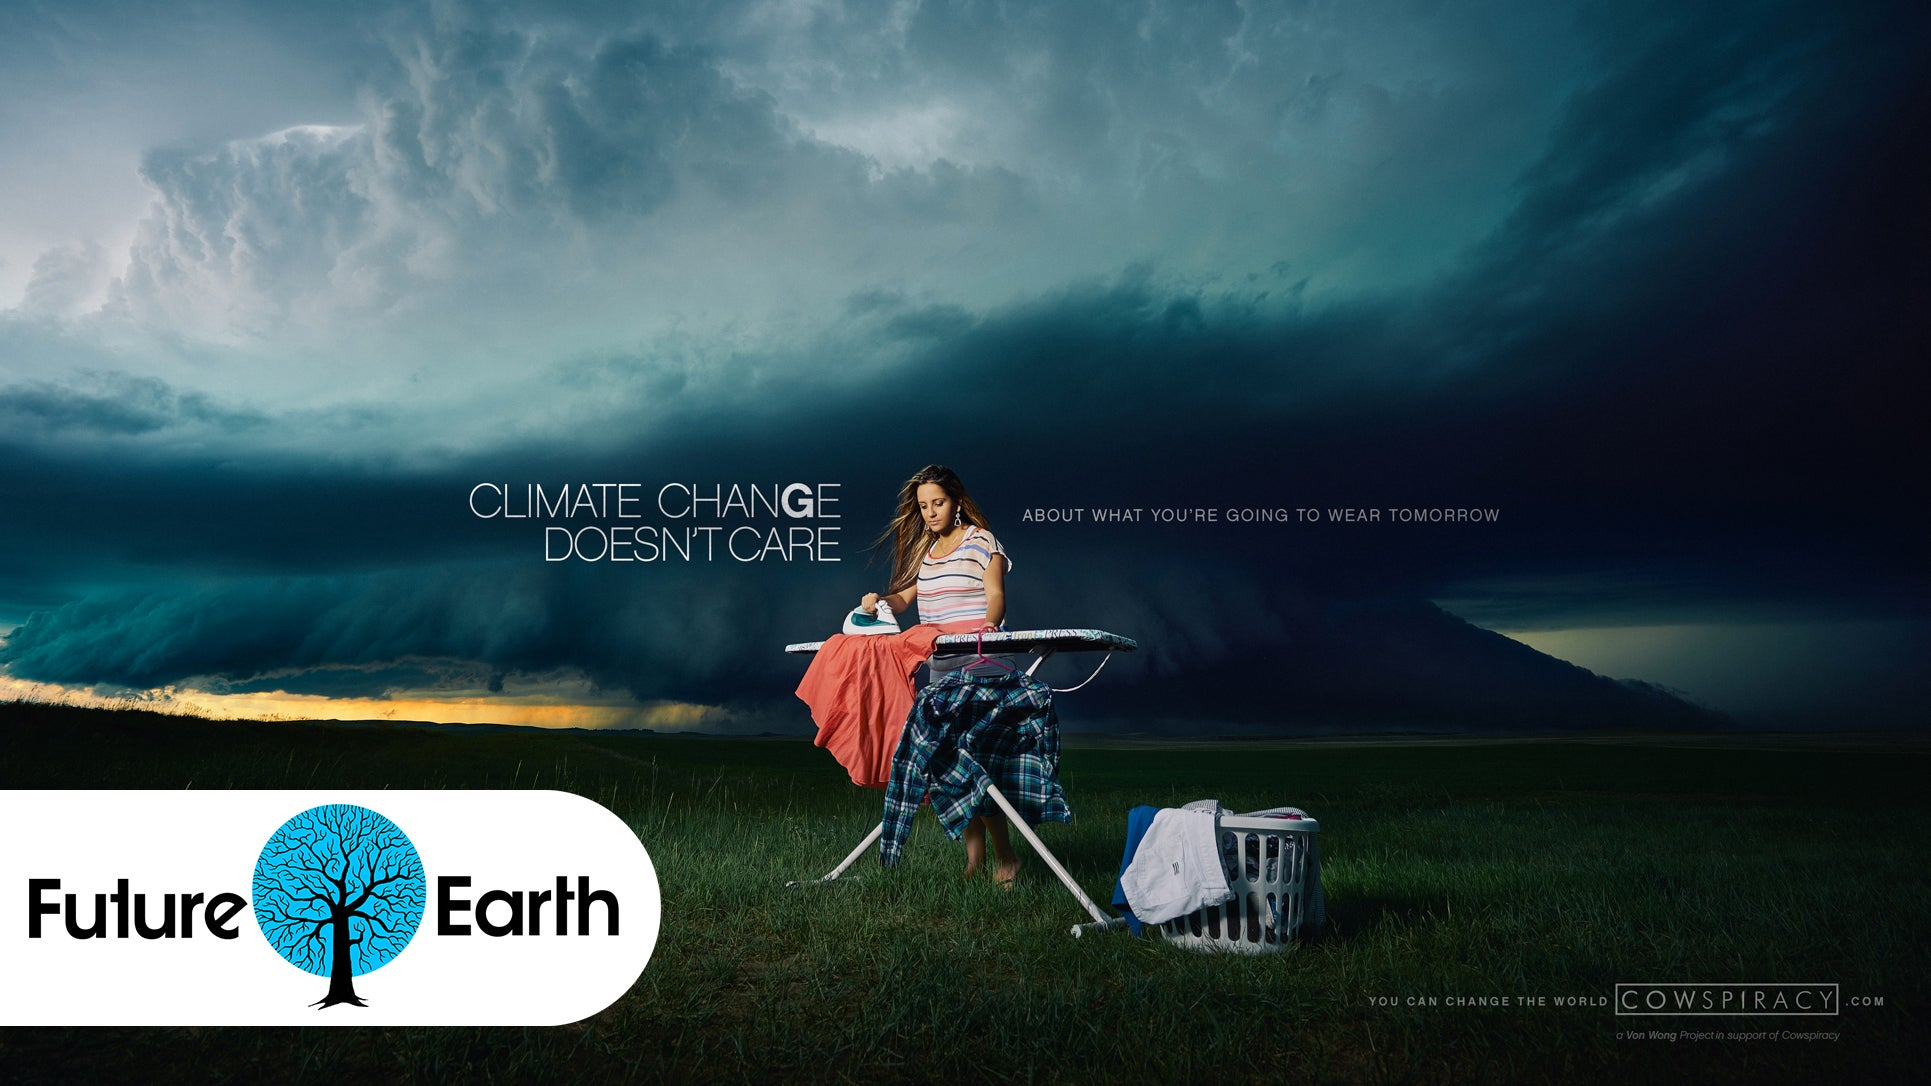 These Surreal Images Show the Gathering Storm of Climate Change